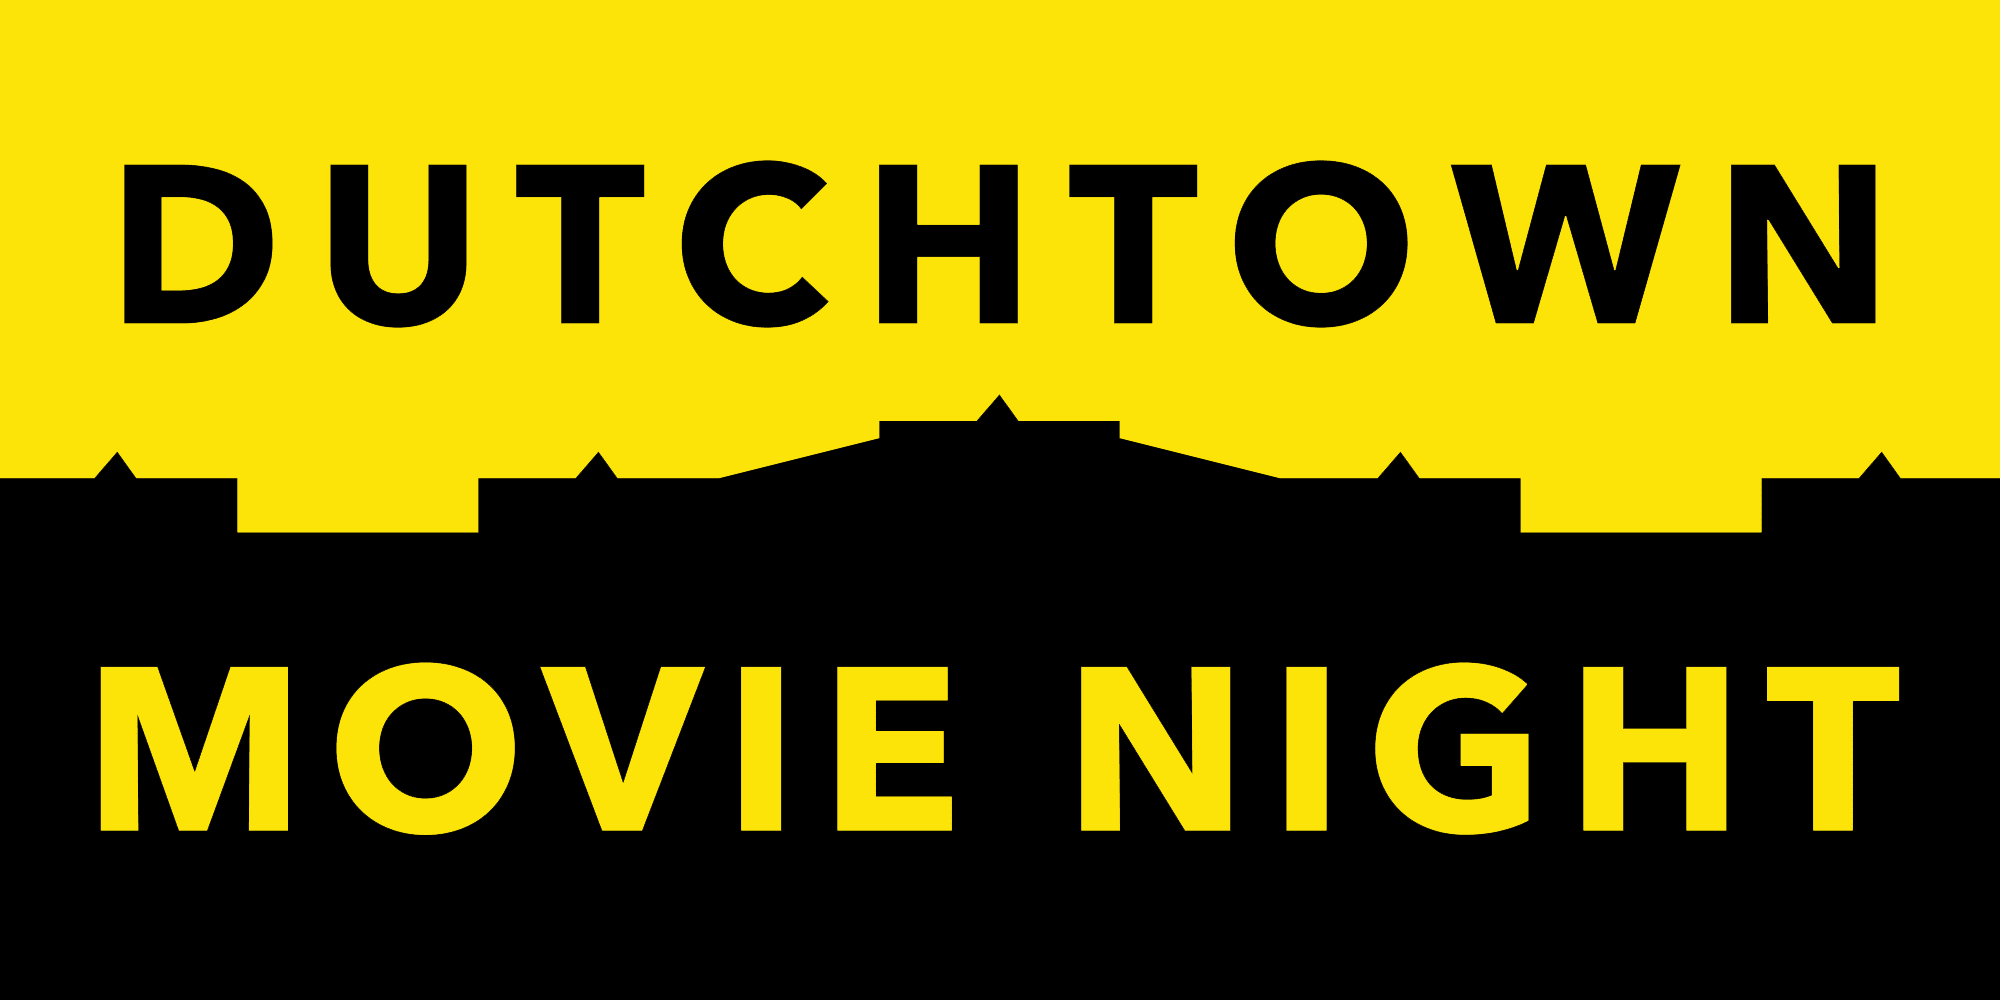 Dutchtown Movie Night.